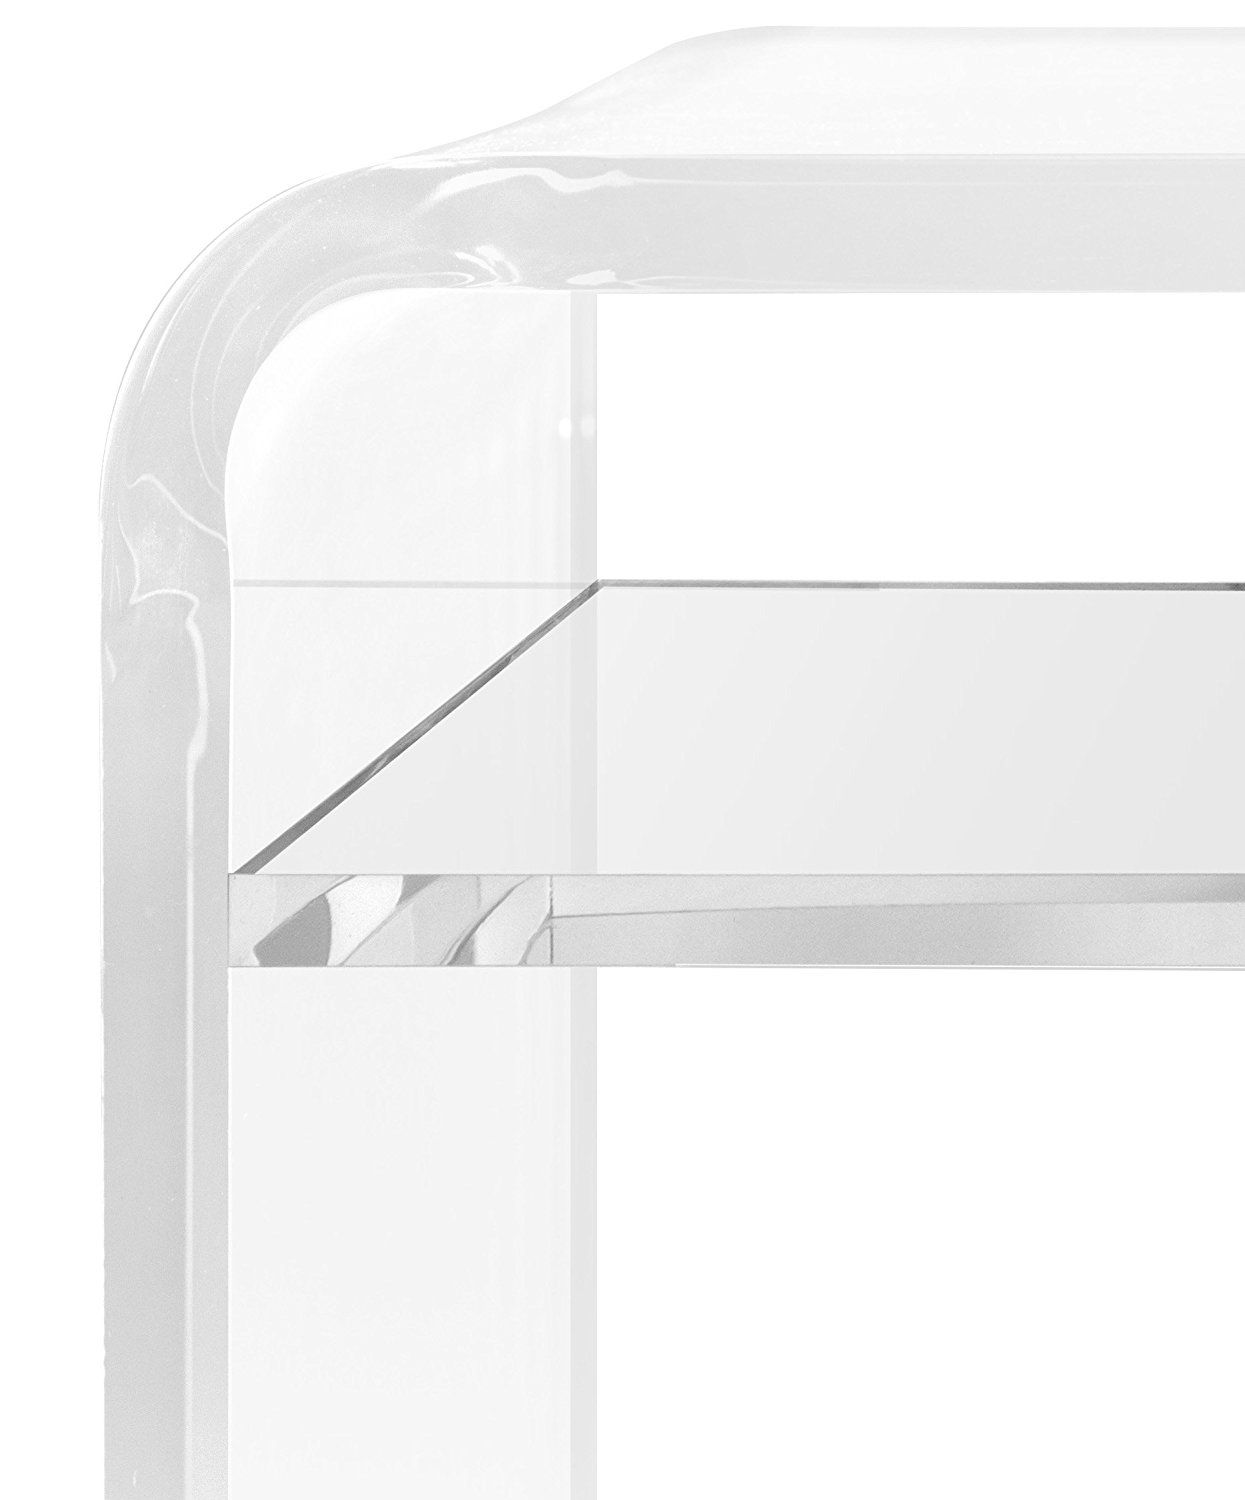 Thick Acrylic Coffee Table With Shelf Clear Entryway Benchx16 H